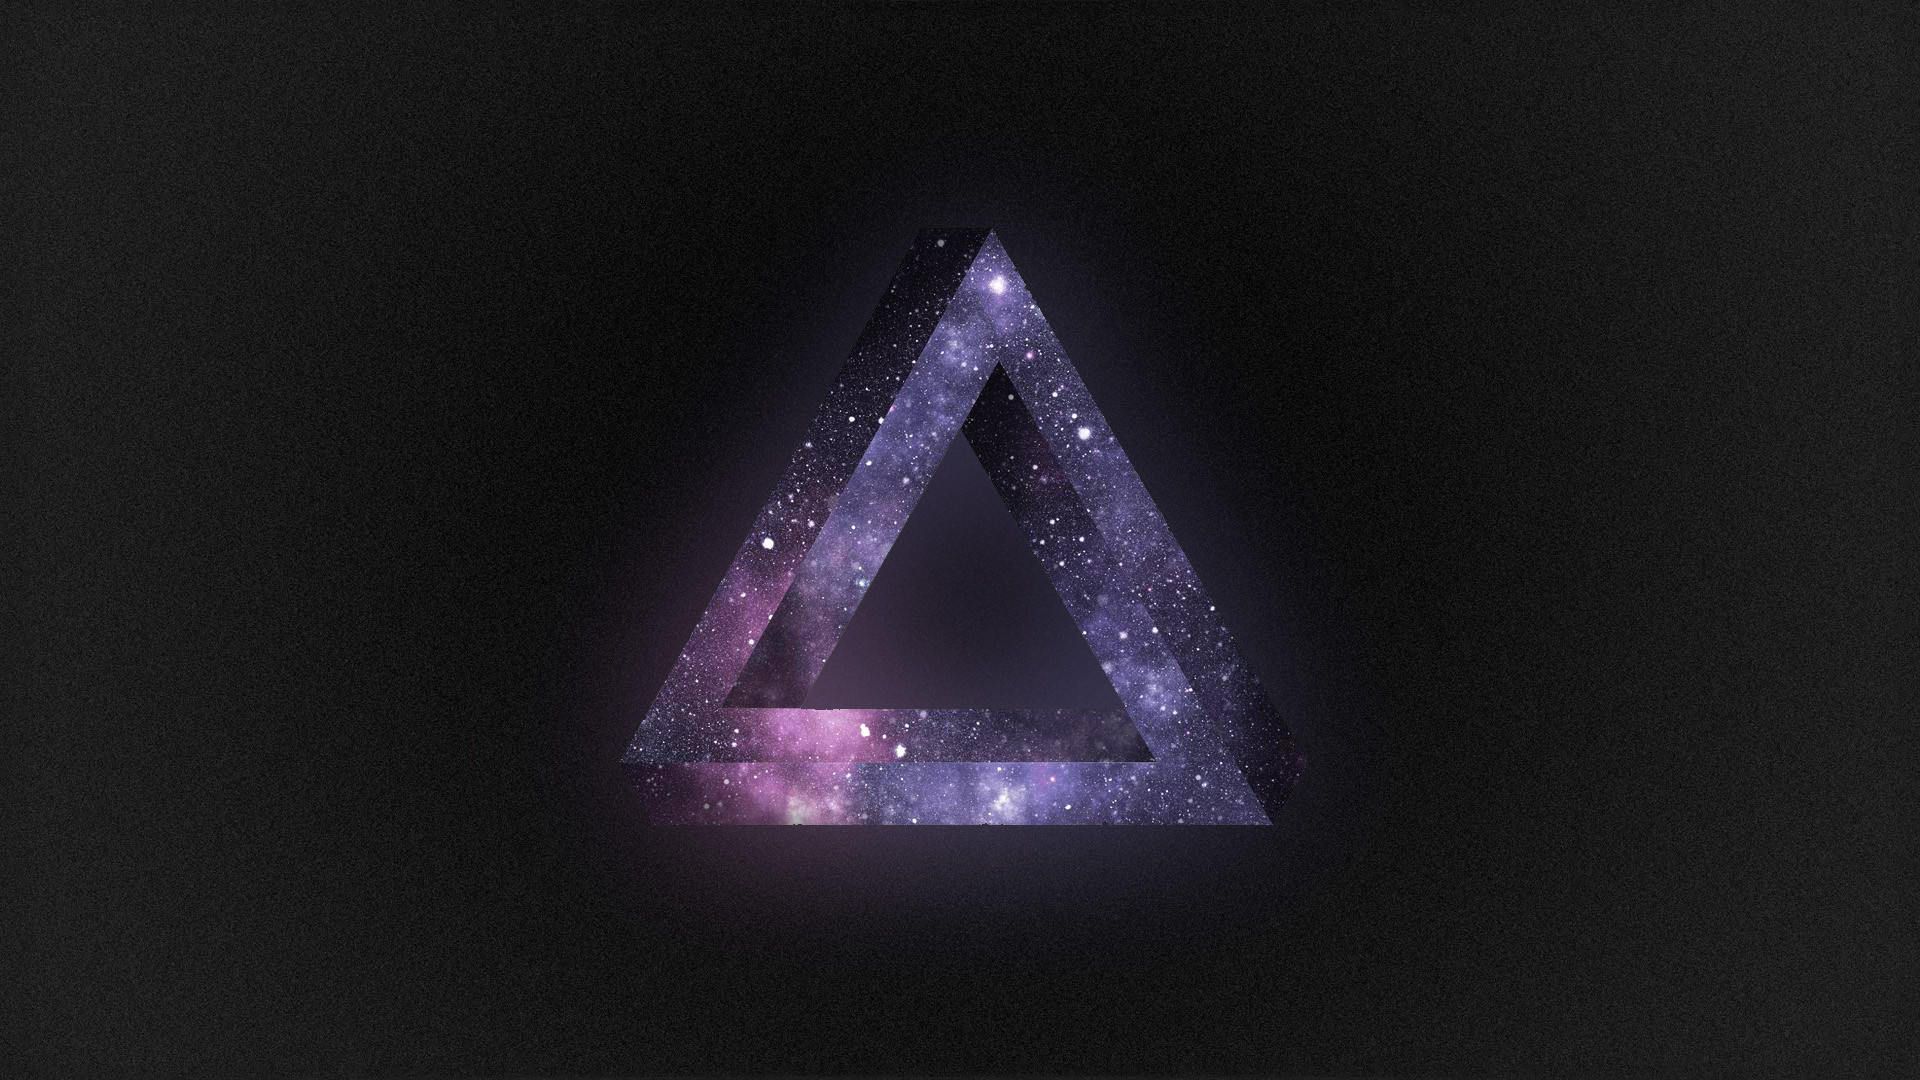 triangle wallpaper 1920x1080 75418